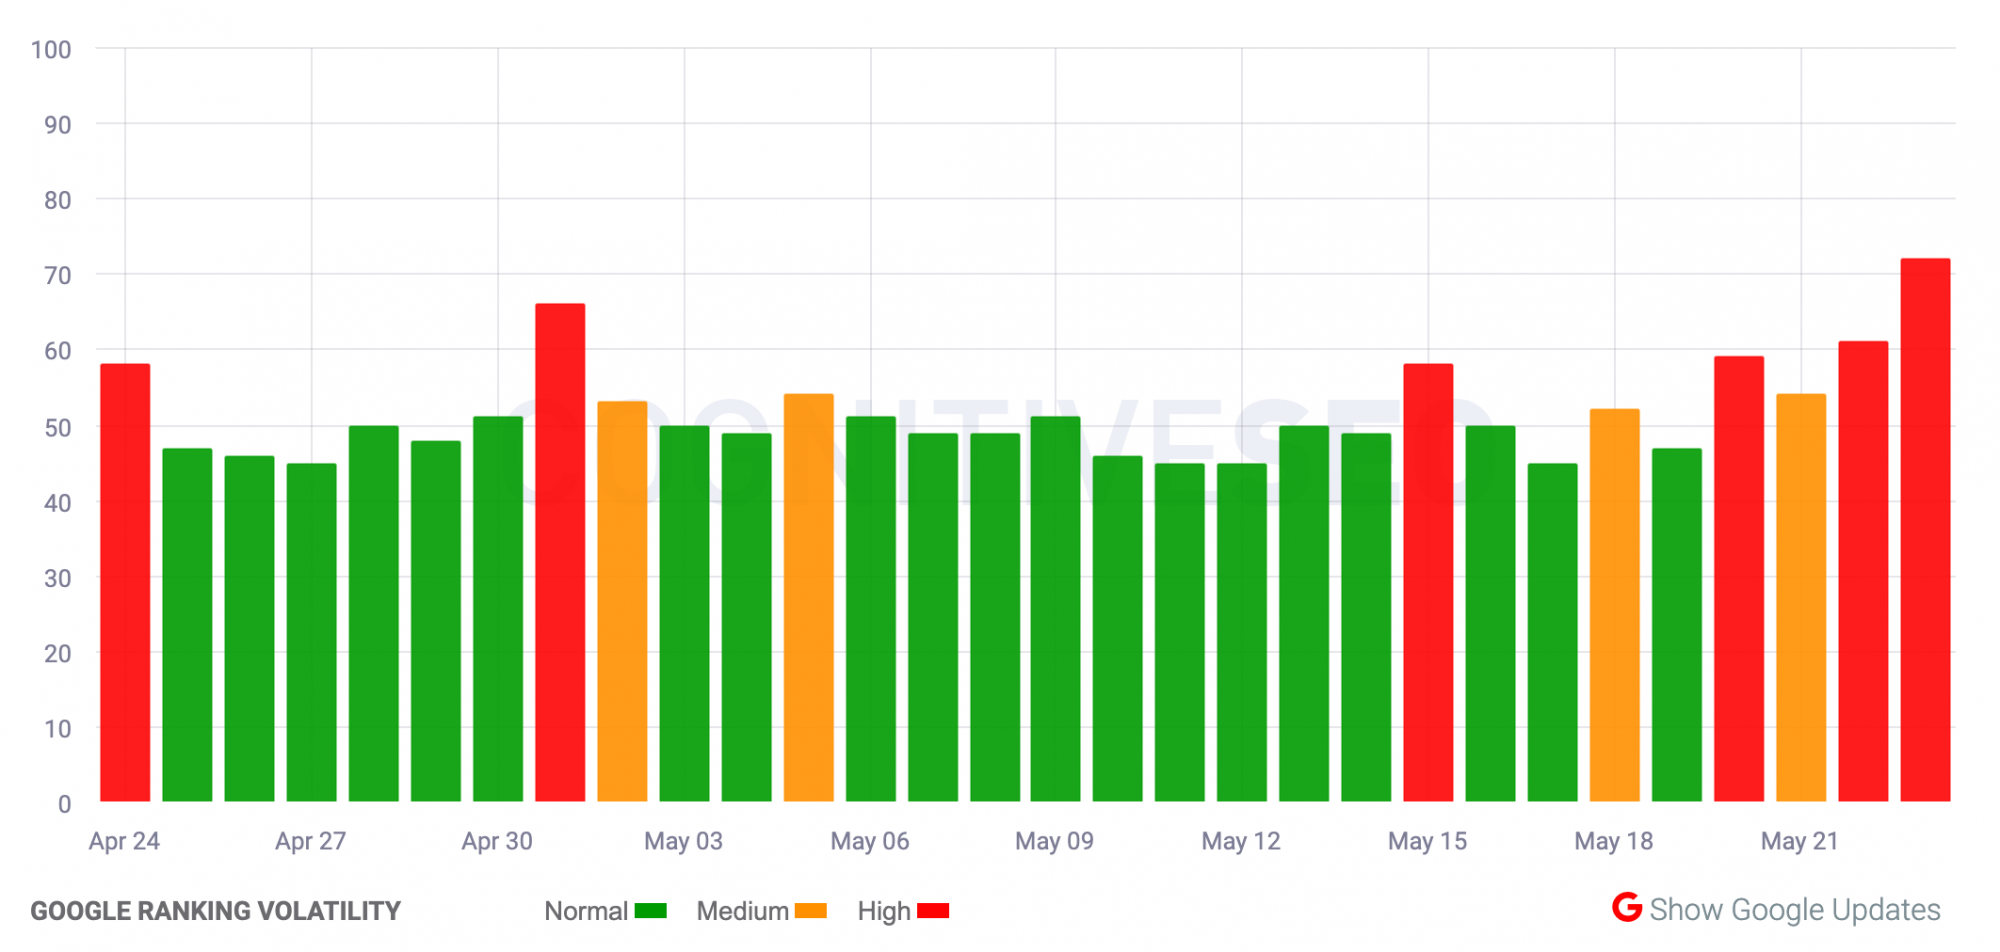 CognitiveSEO Tracking Tool Result in May 22nd